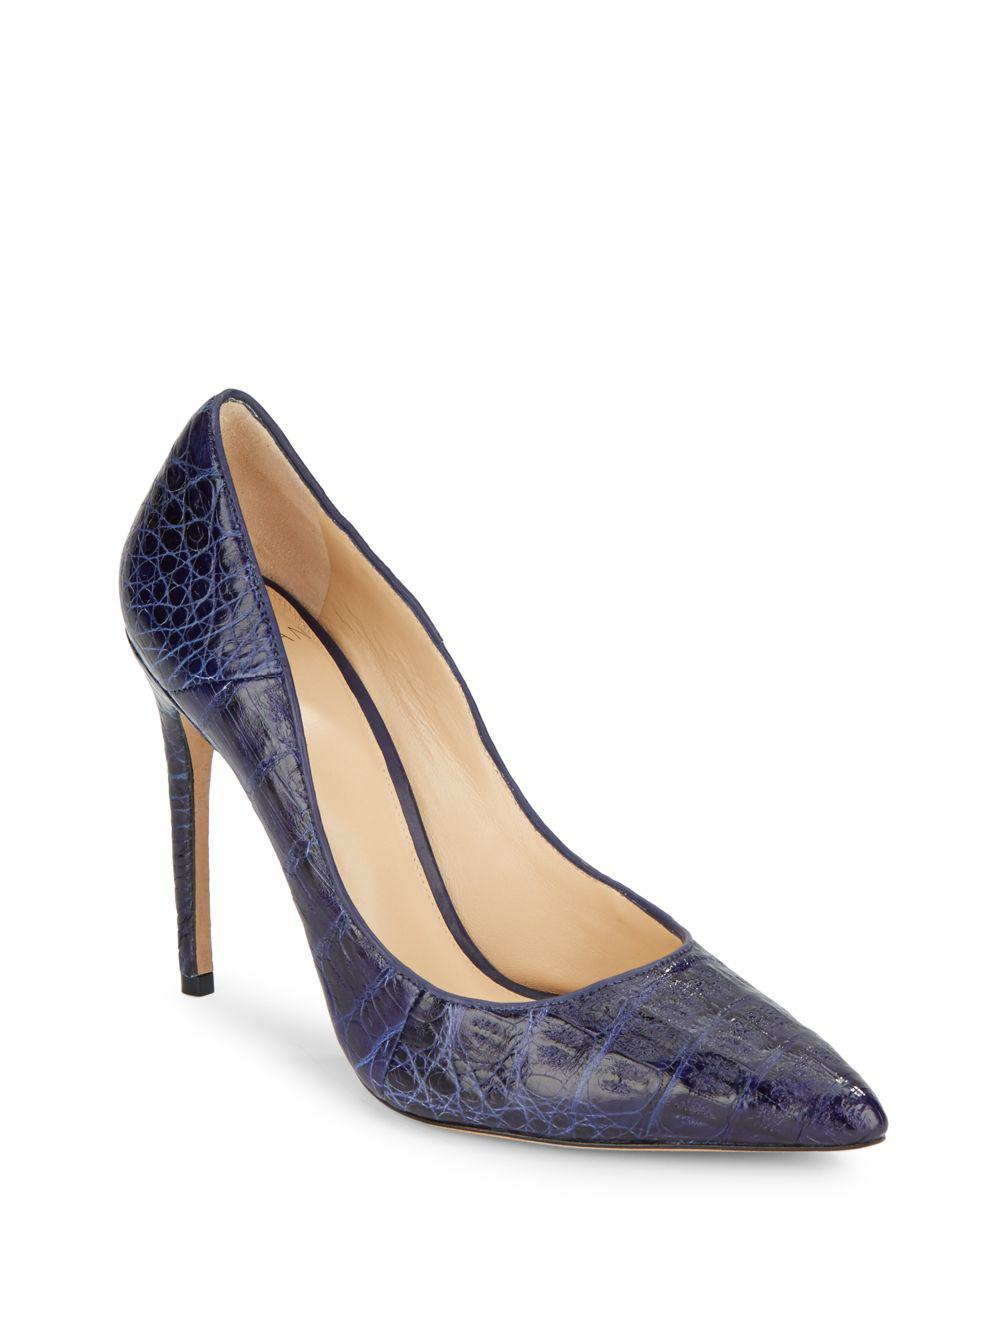 outlet exclusive Alexandre Birman Alligator Peep-Toe Pumps clearance clearance store FBKFCtr